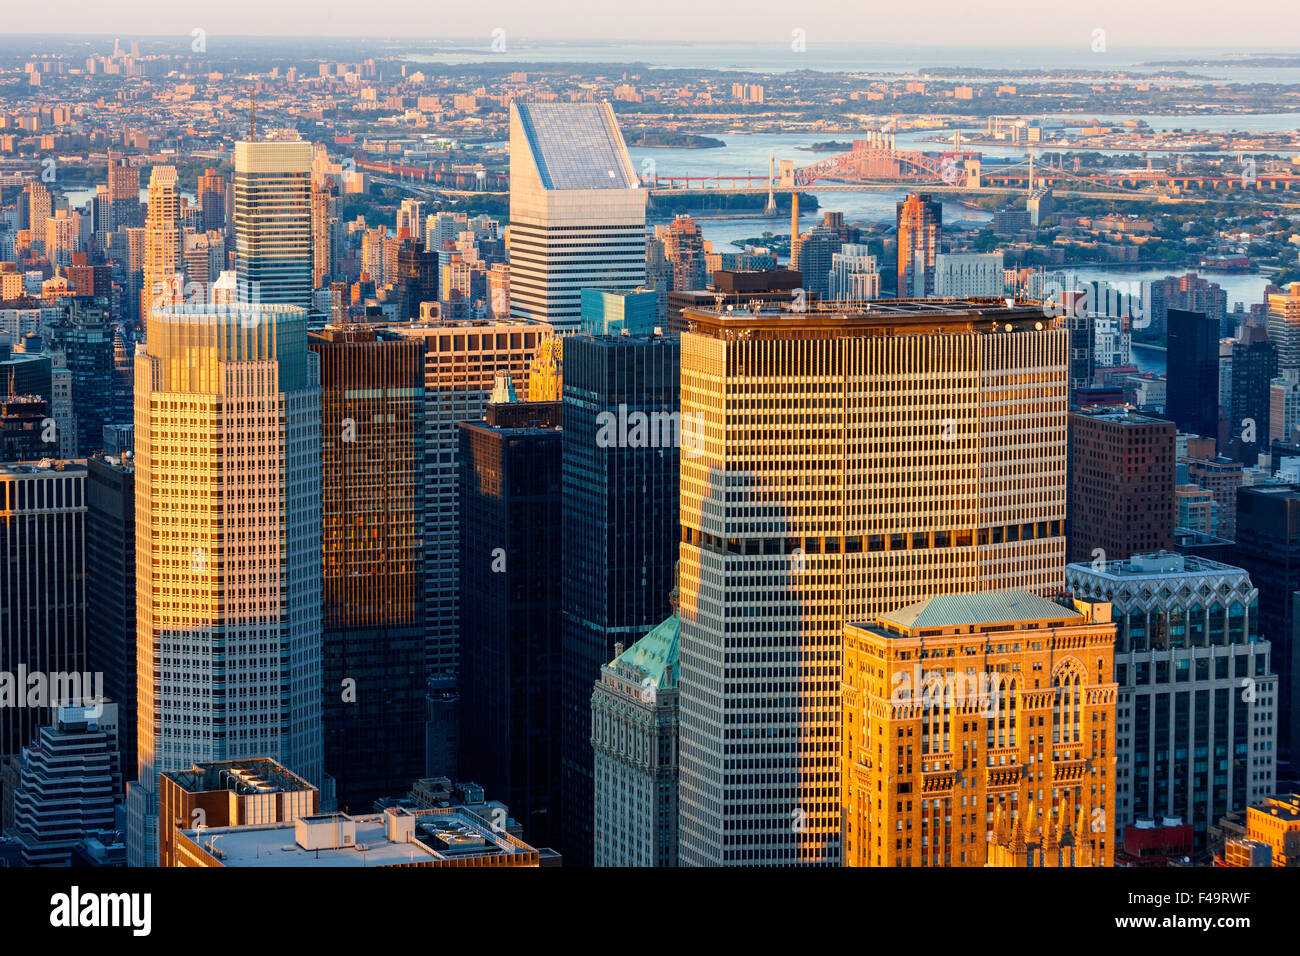 Aerial view of Midtown Manhattan skyscrapers at sunset. New York City skyline. USA - Stock Image